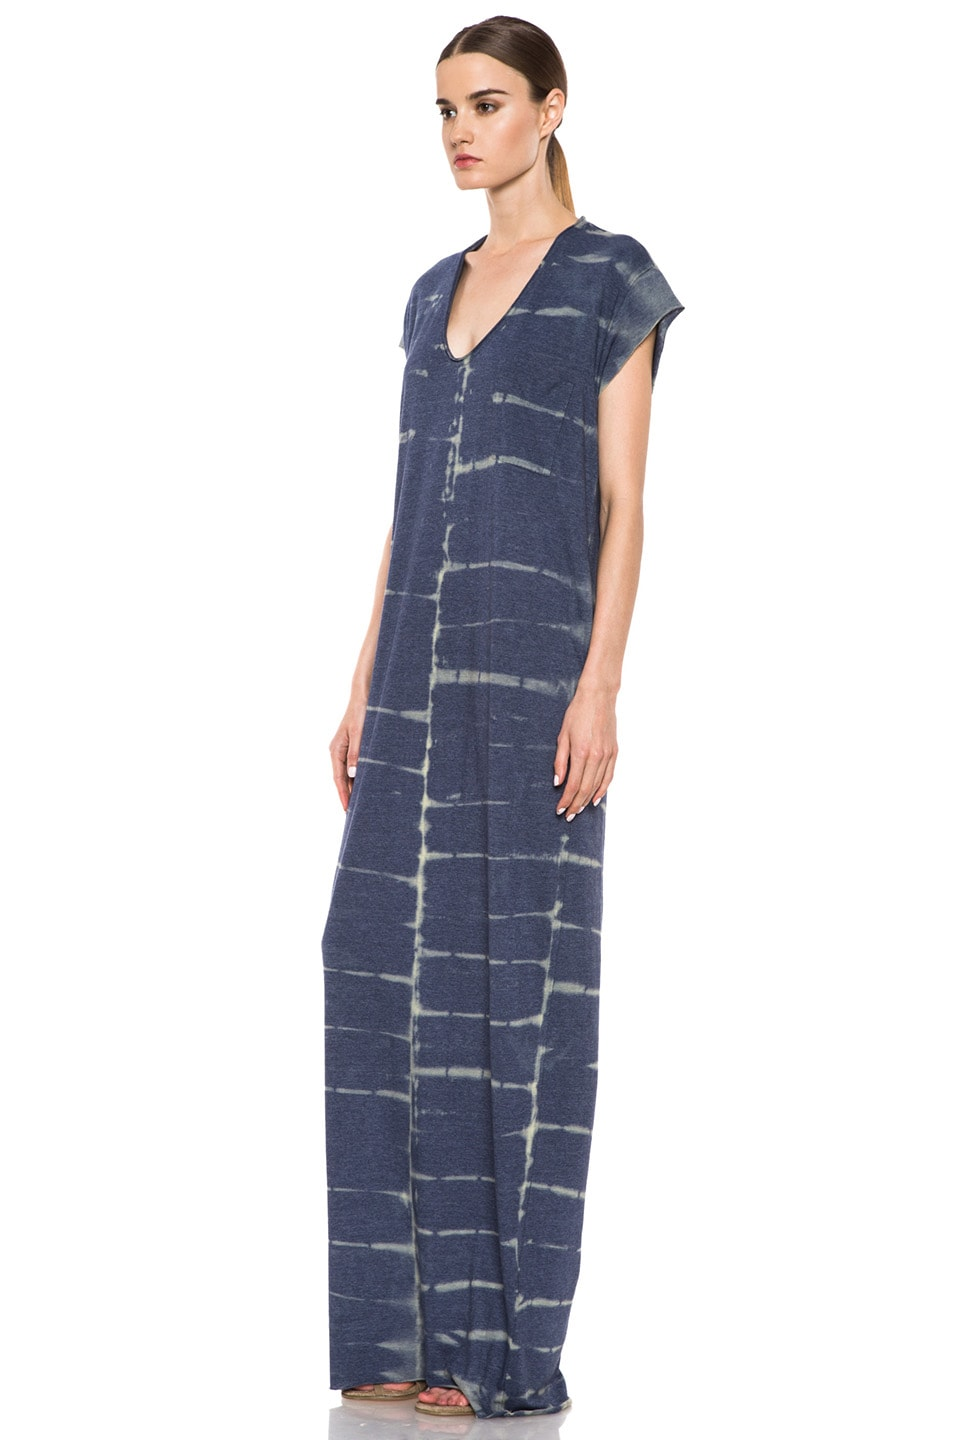 Image 2 of Raquel Allegra Deconstructed Jersey Caftan Dress in X-Ray Blue